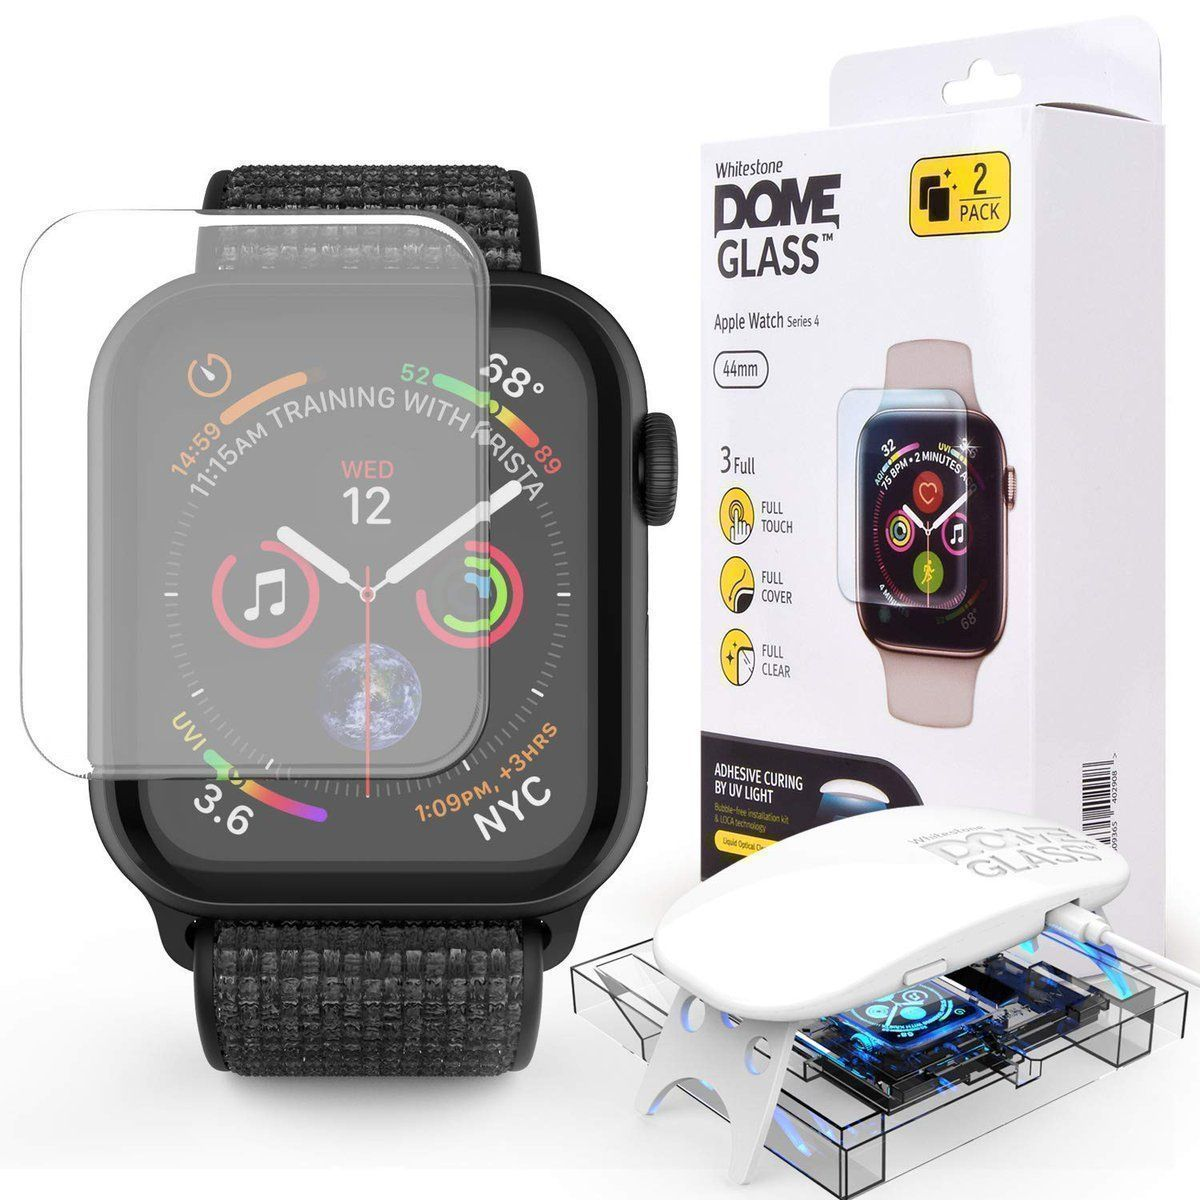 #whitestonedomeglass welcomes off-line business partners all over the world!! For details:  https:// buff.ly/2SfjXT4  &nbsp;      #Amazon storefront:  https:// buff.ly/2VNv8F2  &nbsp;      We are the member of SMAPP(Samsung Mobile Accessory Partnership Program) with LOCA tech!! #Applewatch4 #Galaxynote9 <br>http://pic.twitter.com/KkB8tn2I2d